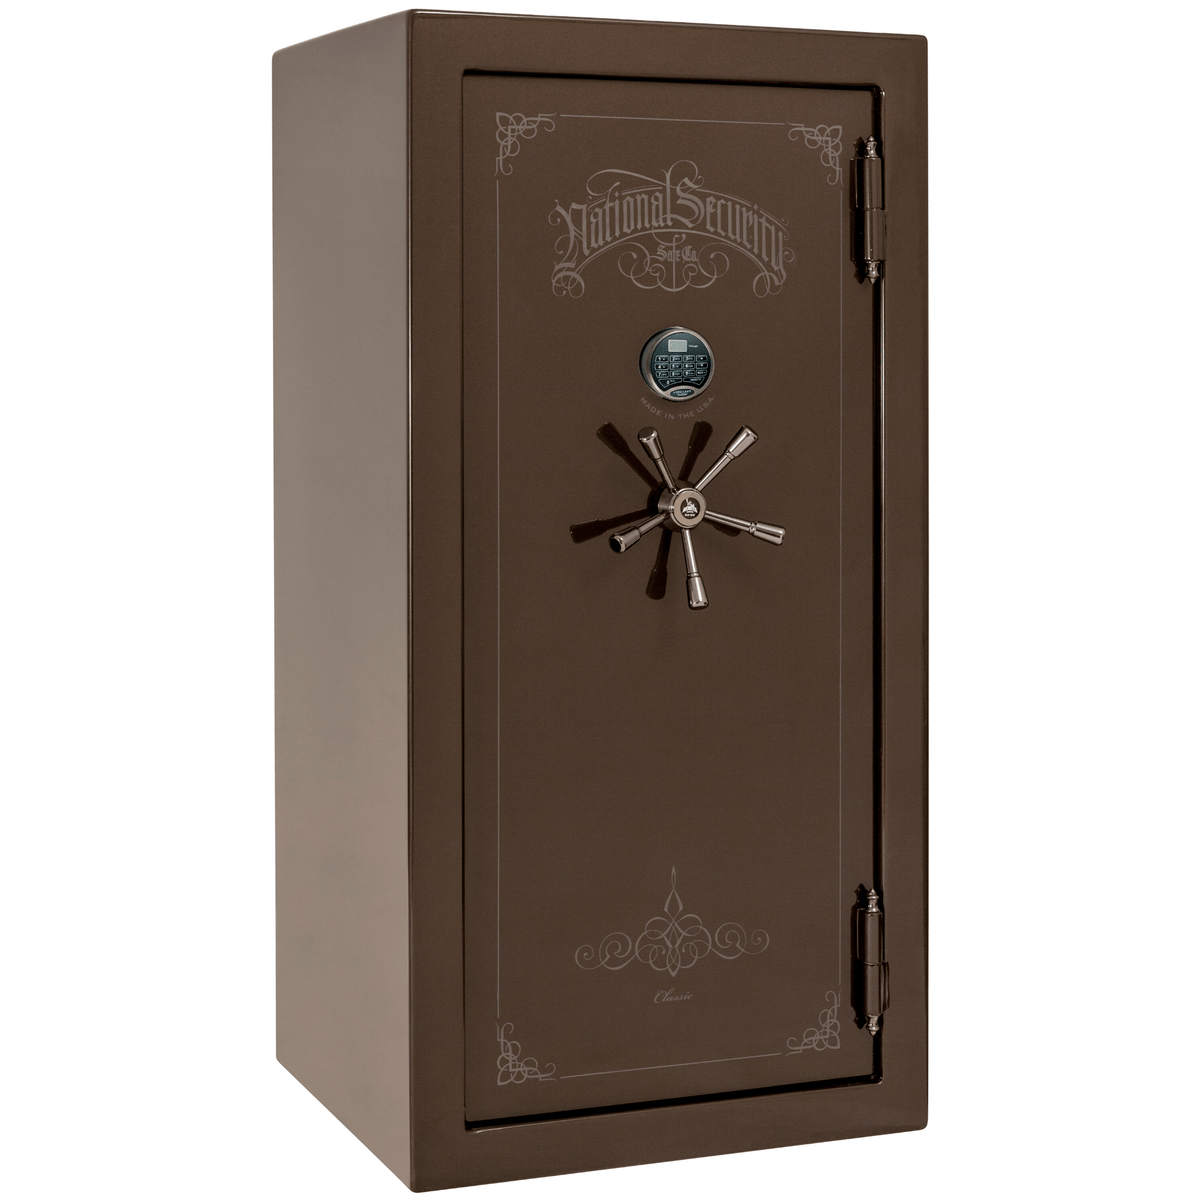 "Classic Plus | 25 | Level 7 Security | 110 Minute Fire Protection | Bronze Gloss | Black Electronic Lock | 60.5""(H) x 30""(W) x 29""(D)"